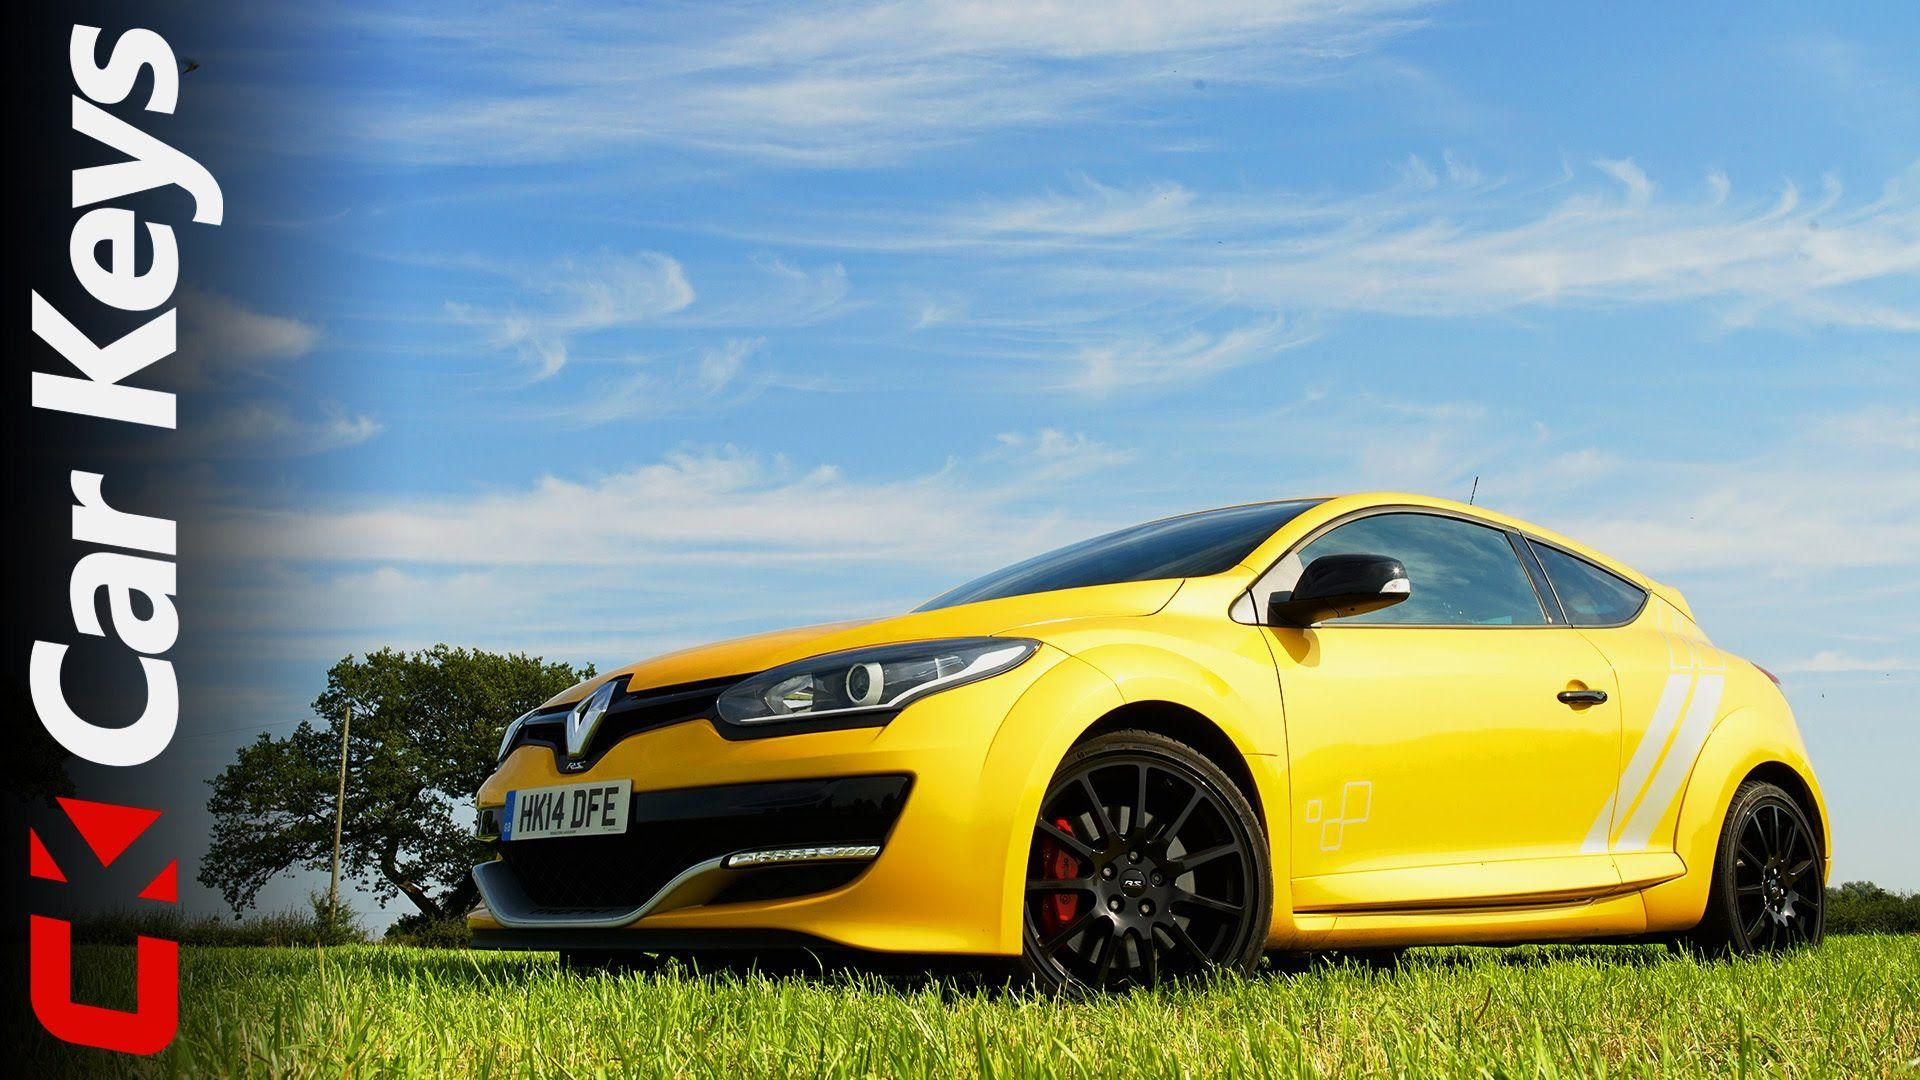 Renaultsport Megane 275 trophy 2015 review – Car Keys